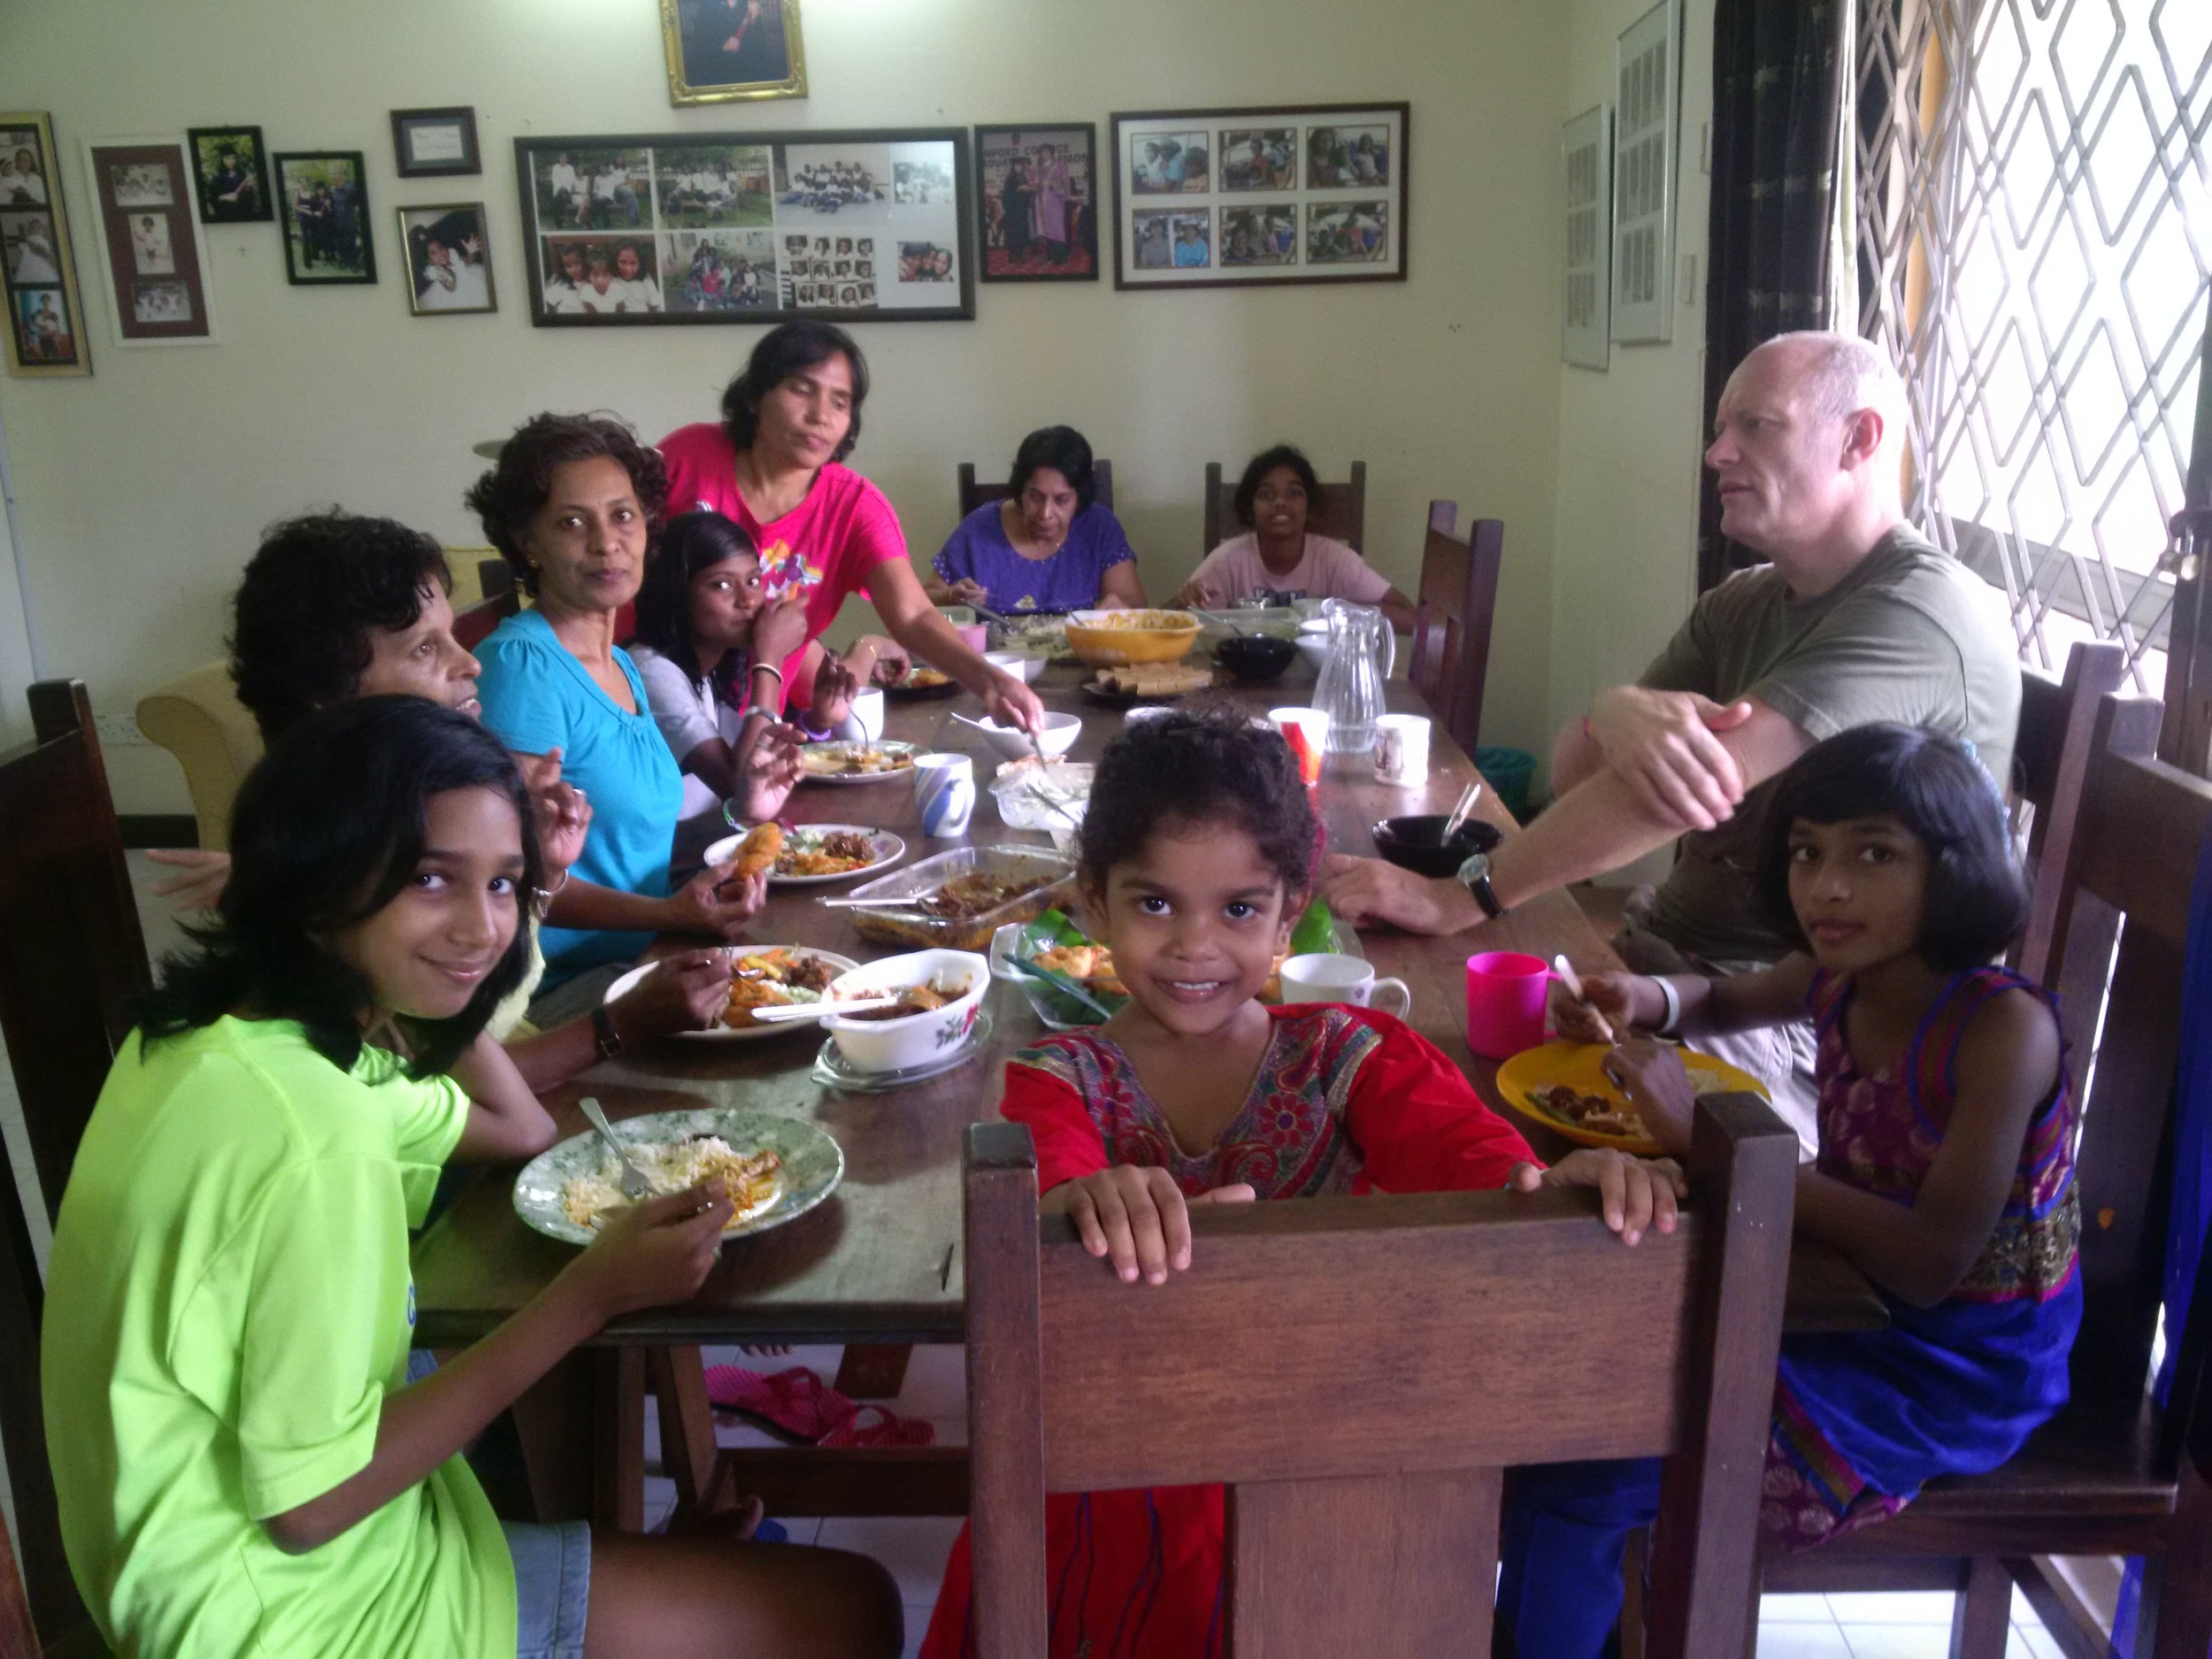 Lunchtime at the Home to celebrate Diwali